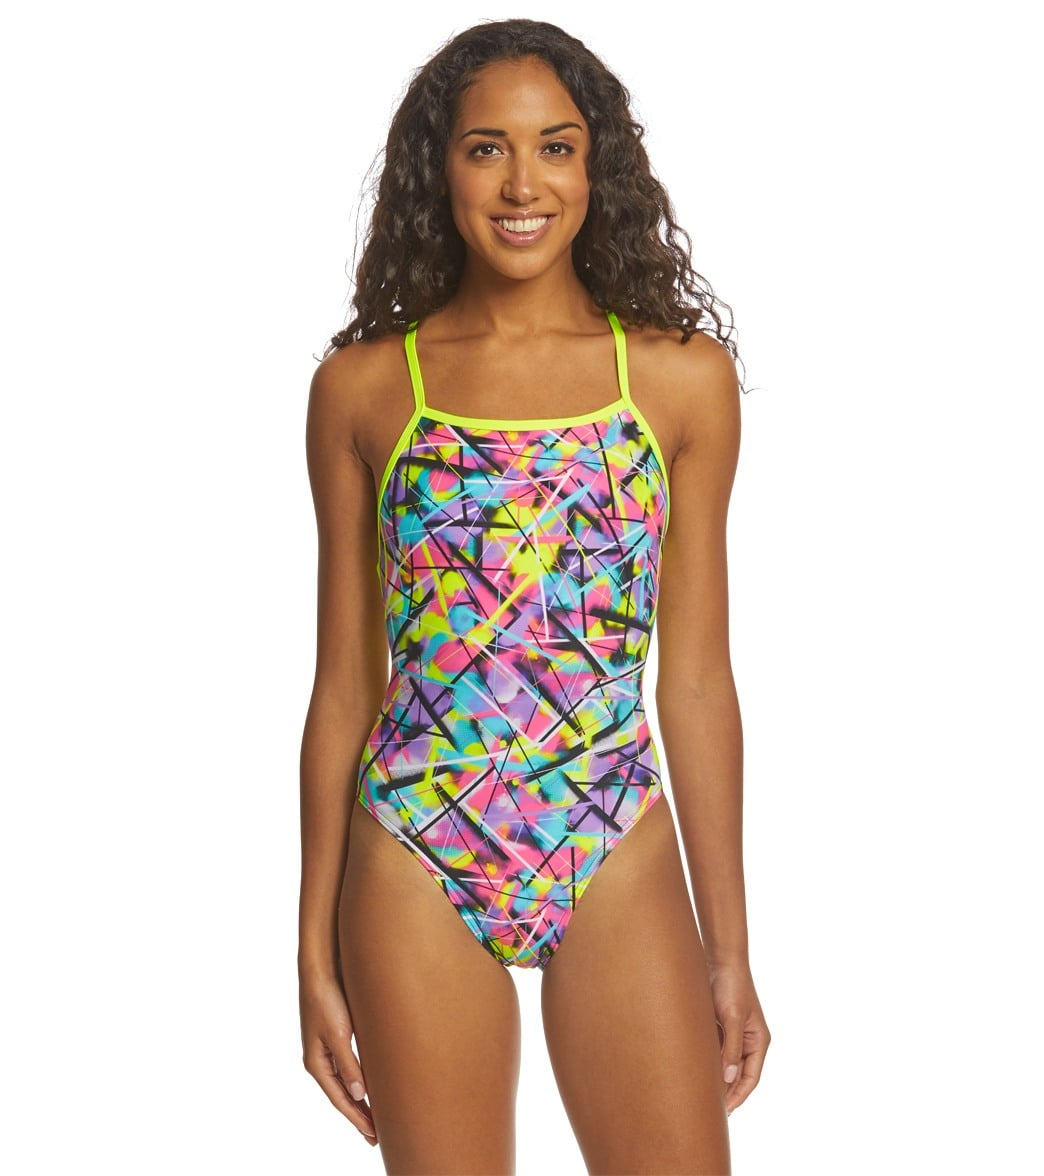 45dbaafc05 Funkita Women's Spray On Strapped In One Piece Swimsuit at SwimOutlet.com - Free  Shipping